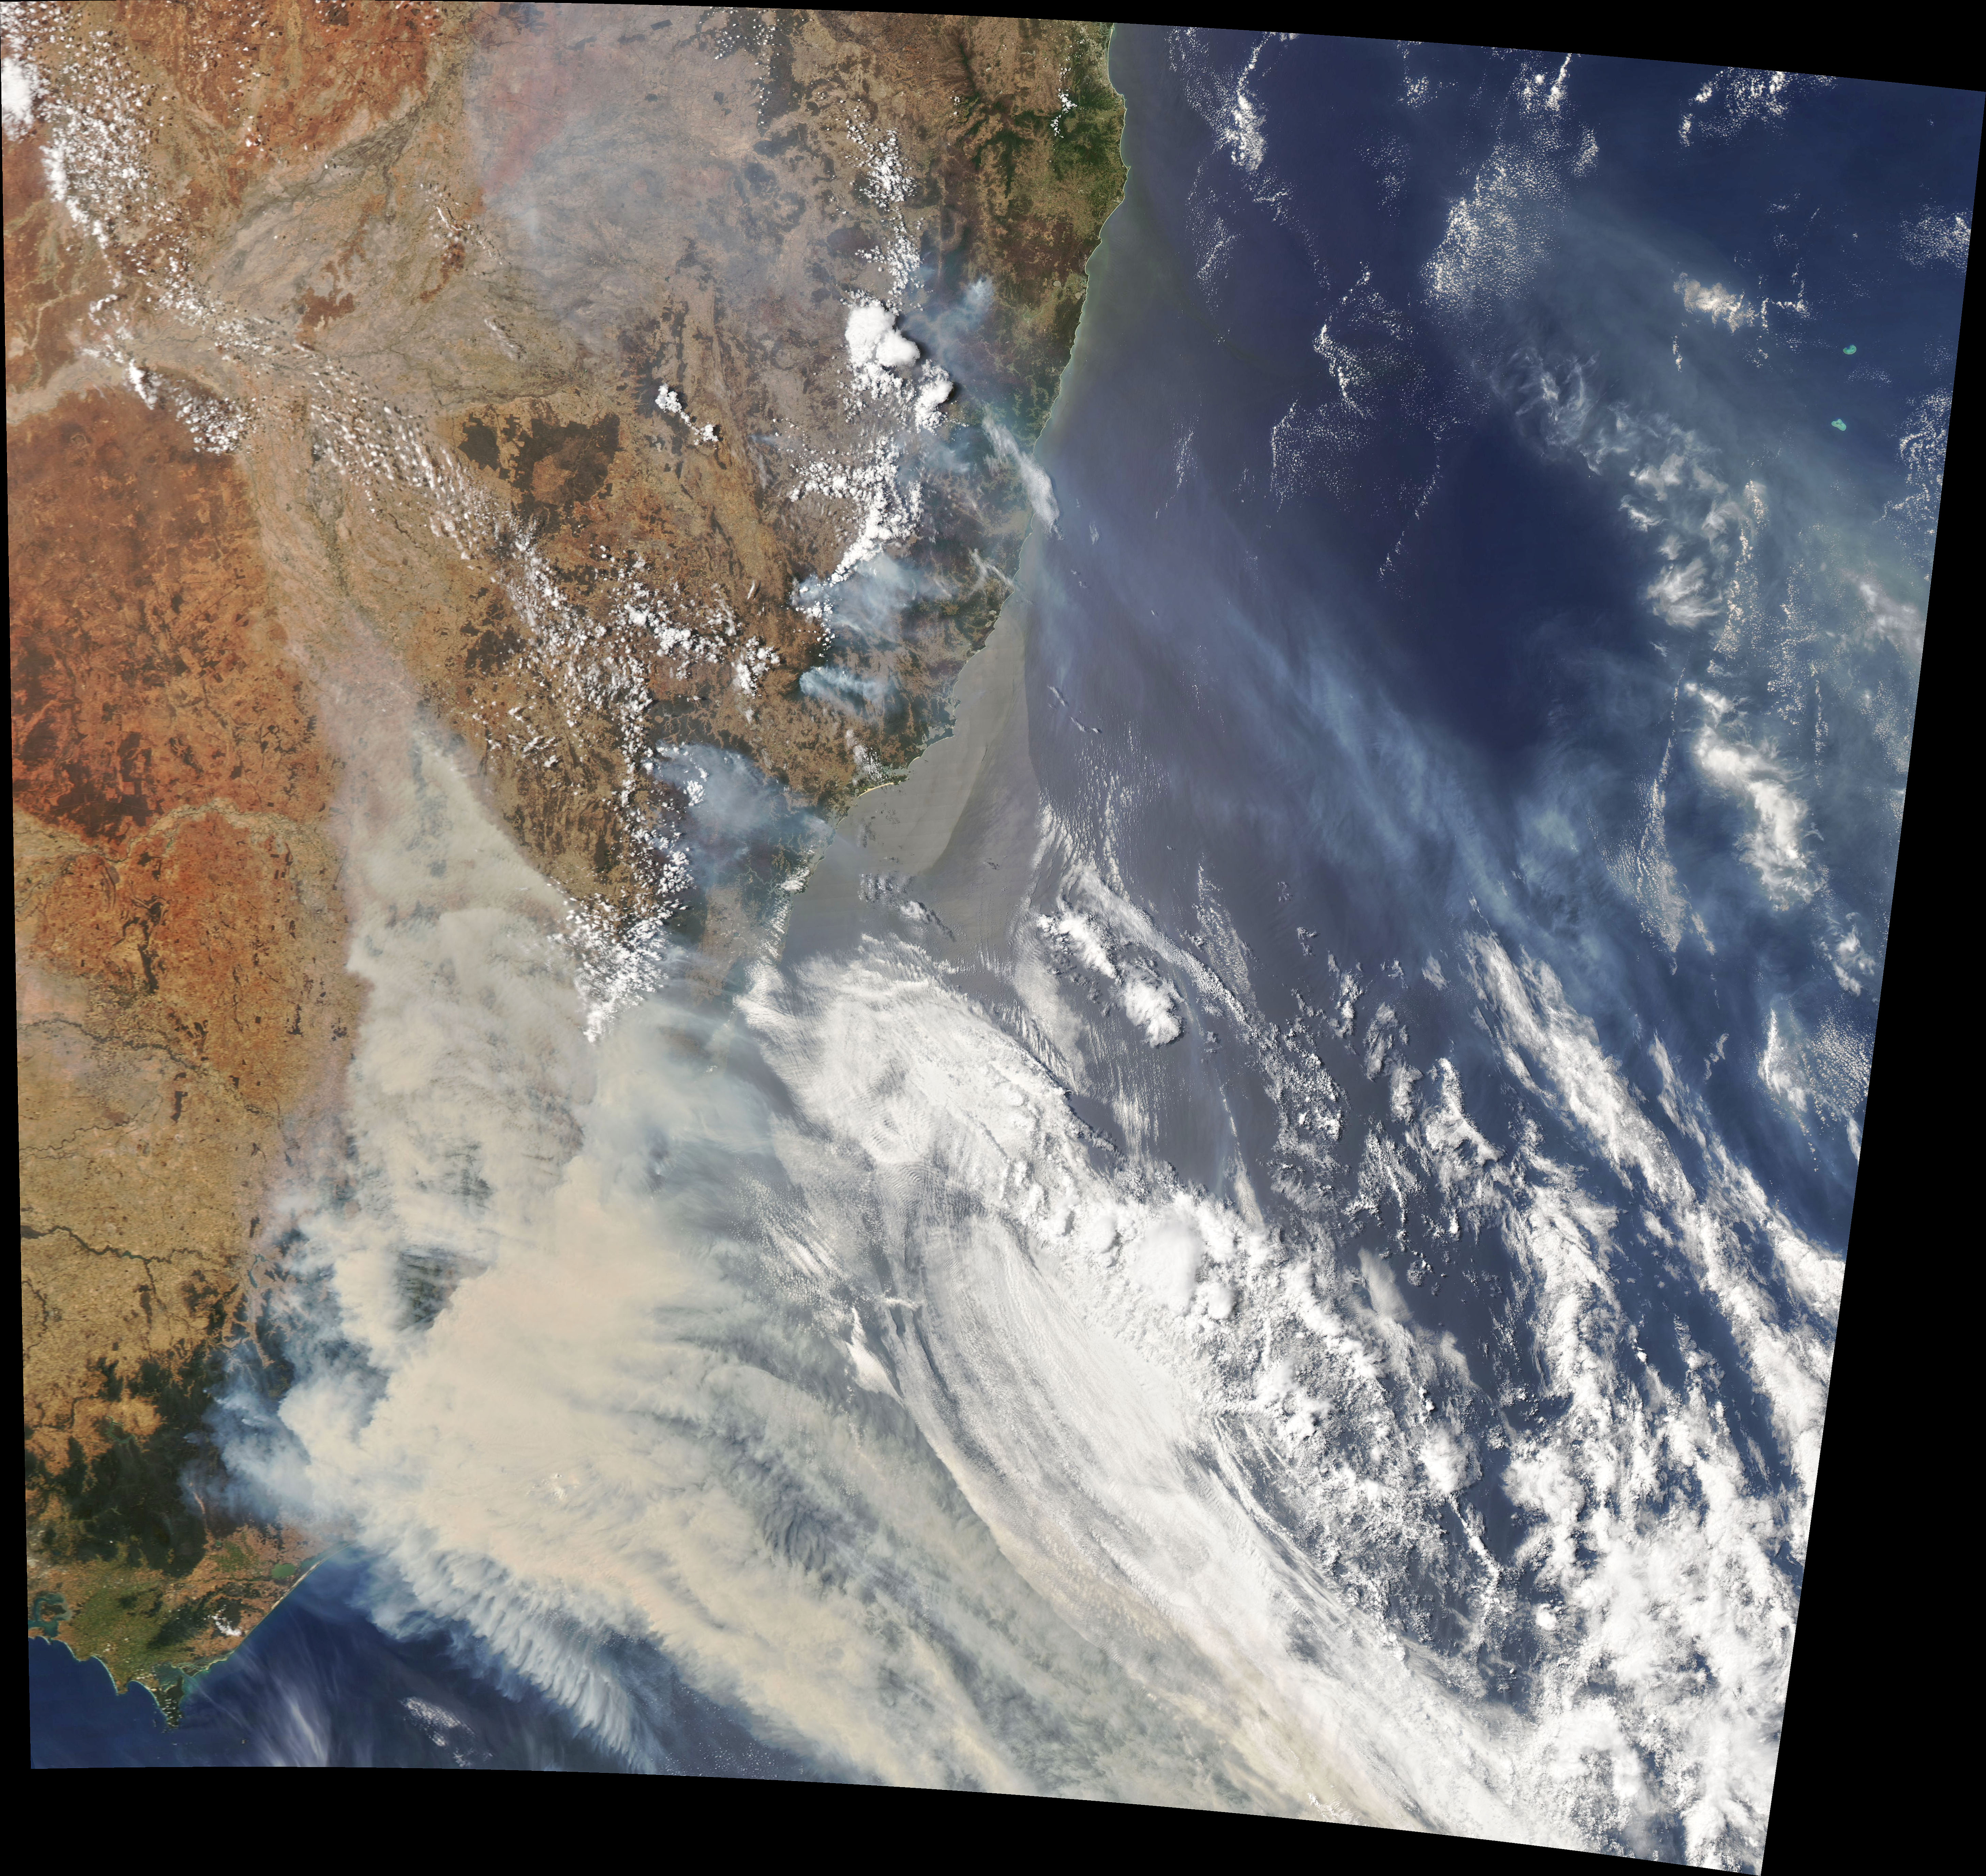 Moderate Resolution Imaging Spectroradiometer (MODIS) on NASA's Aqua satellite. Smoke has a tan color, while clouds are bright white.